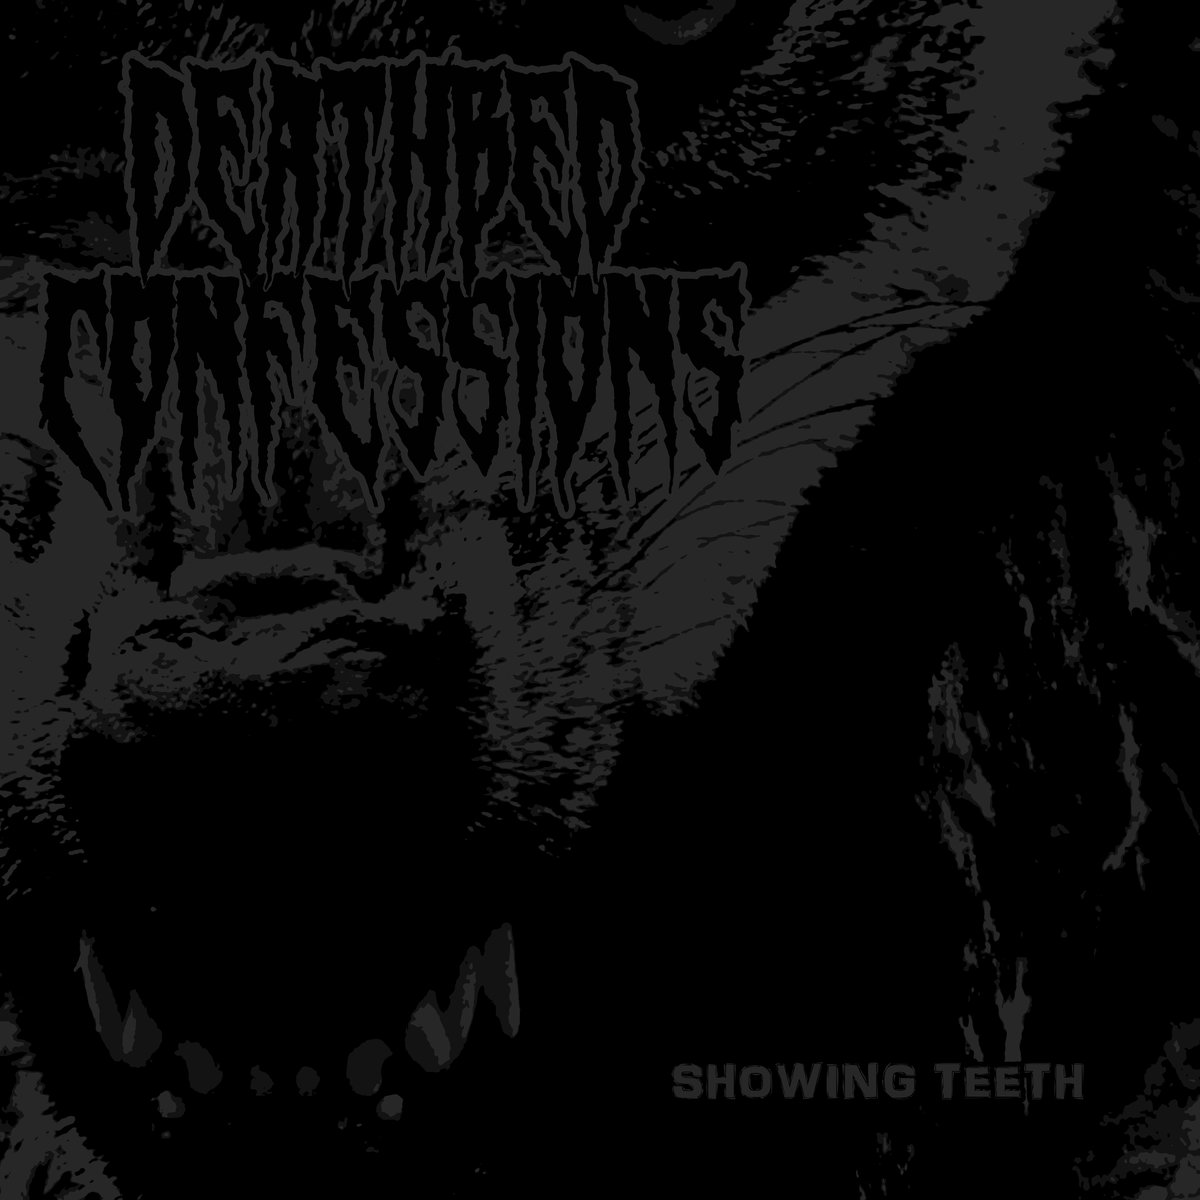 DEATHBED CONFESSIONS - Showing Teeth cover